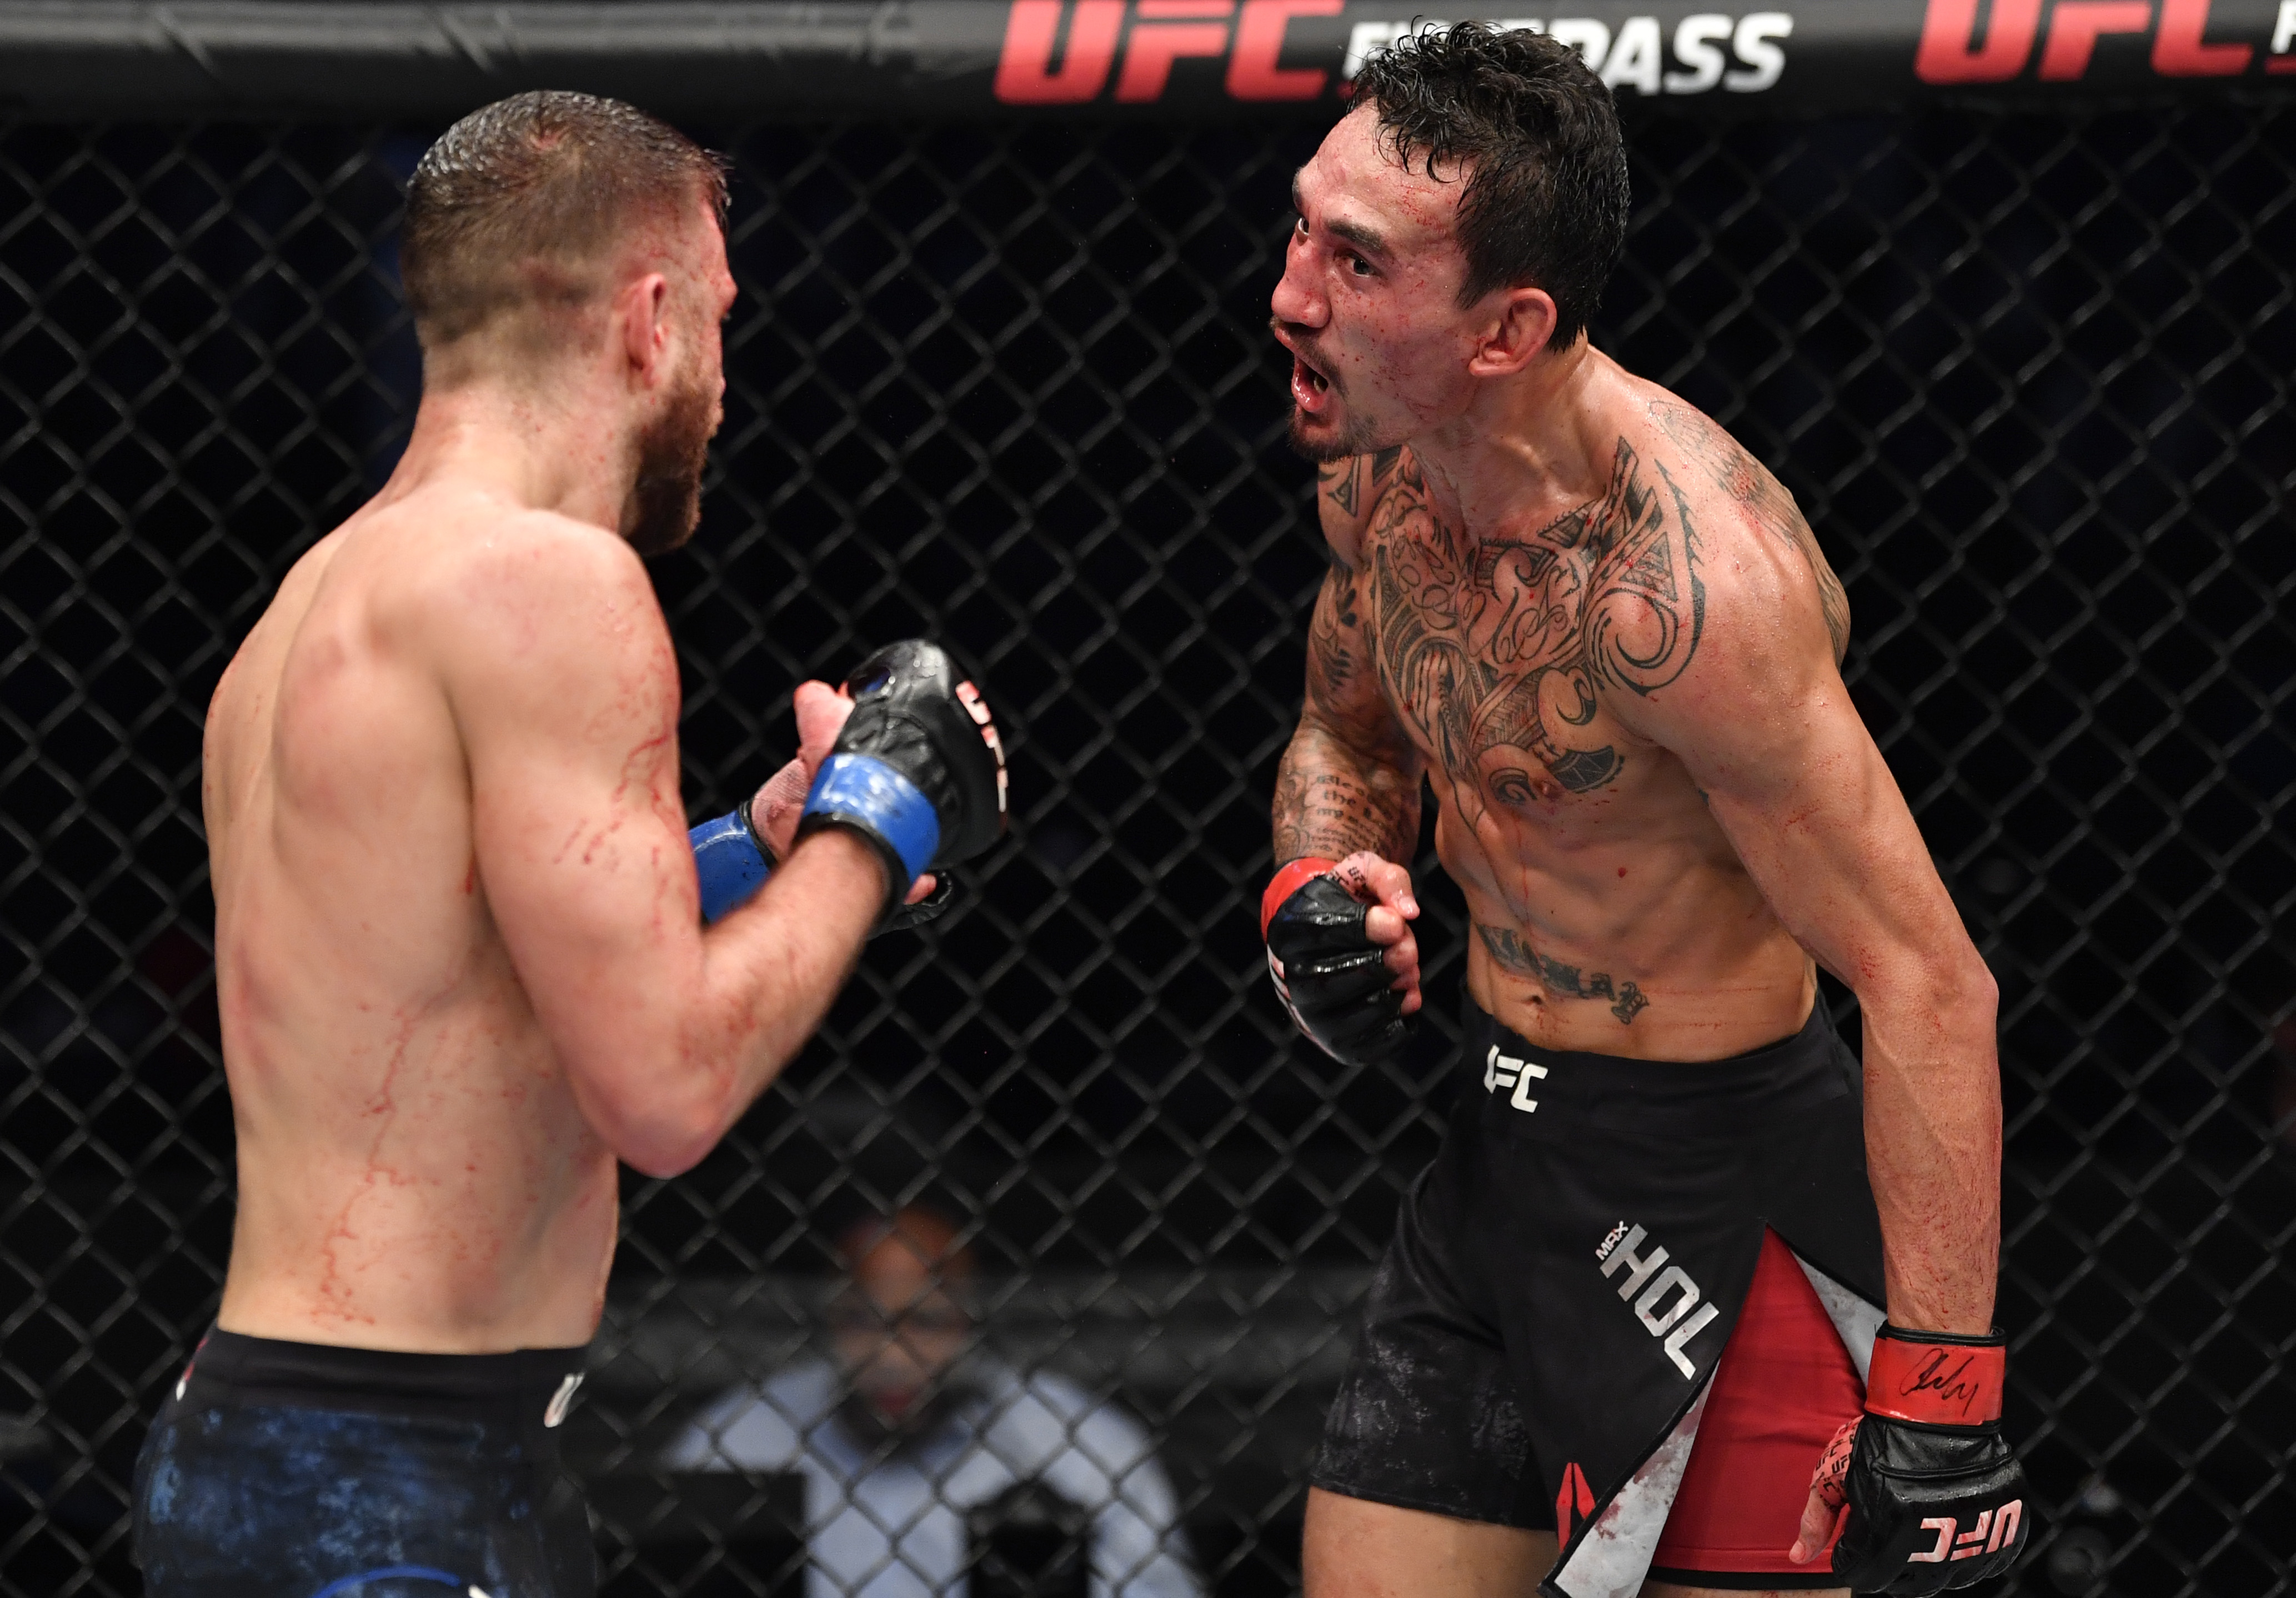 Max Holloway enters a flow state during his fight against Calvin Kattar in January.